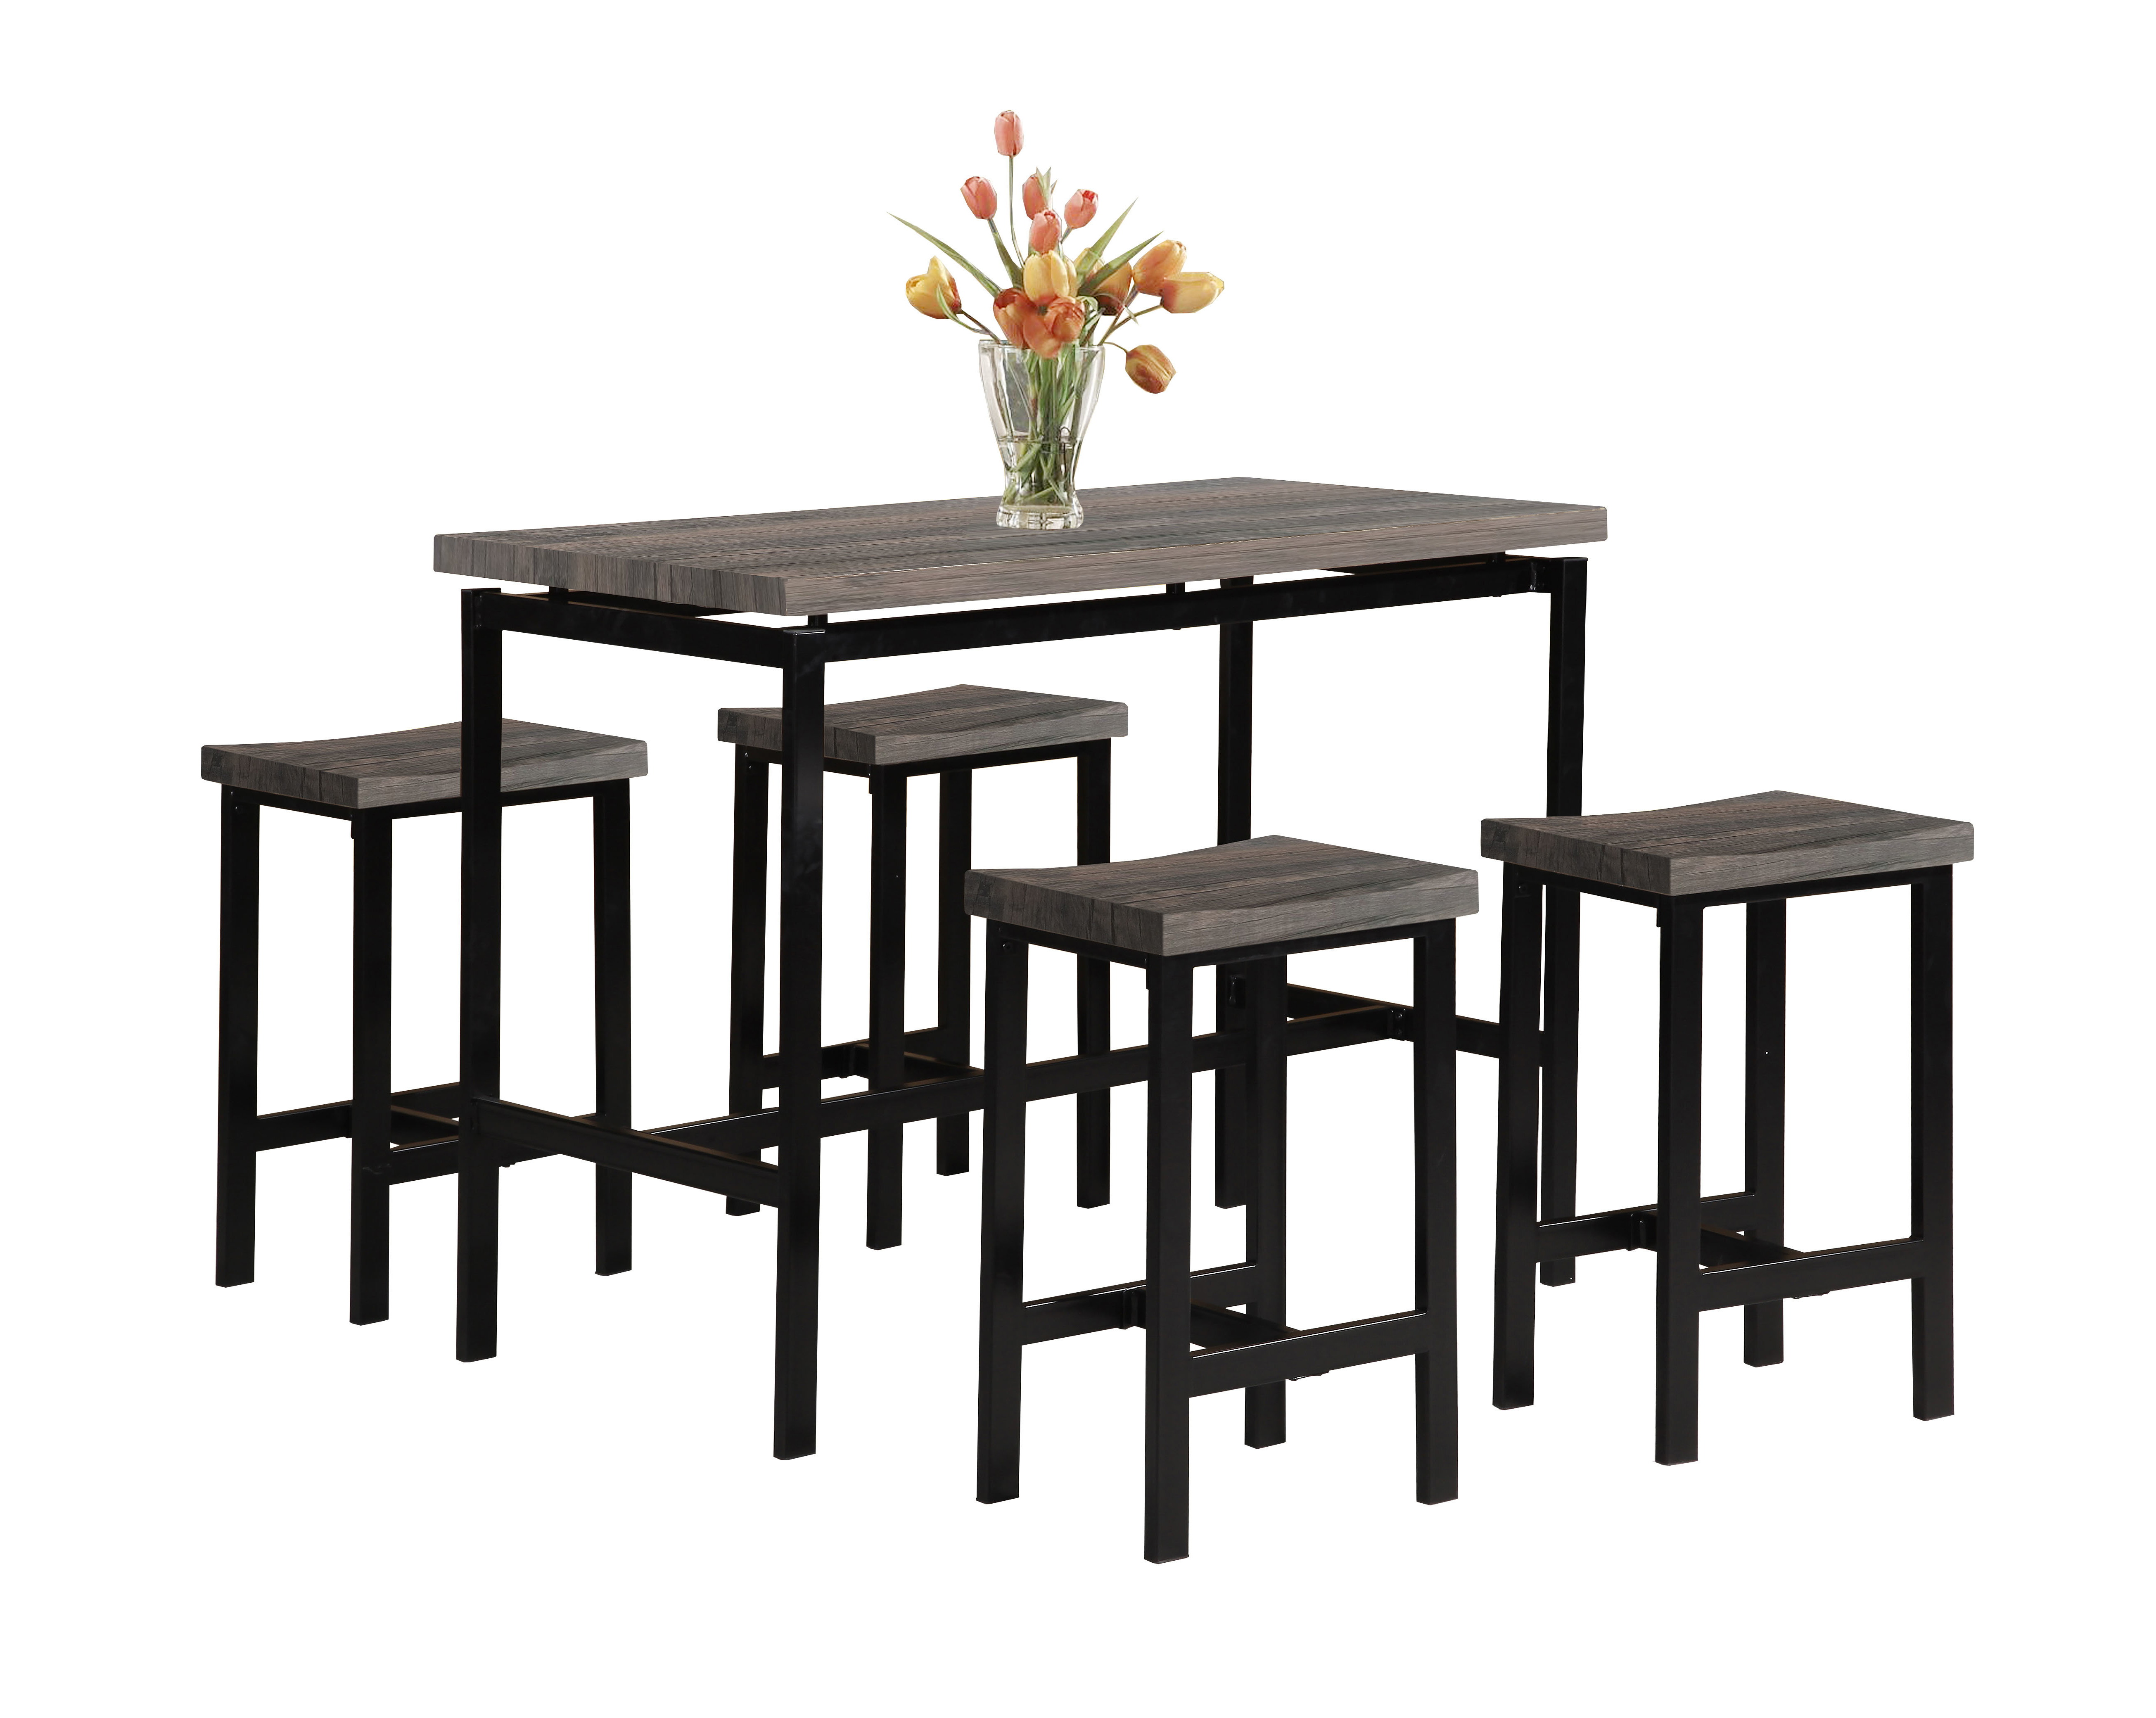 Denzel 5 Piece Counter Height Breakfast Nook Dining Sets intended for Current Wrought Studio Denzel 5 Piece Counter Height Breakfast Nook Dining